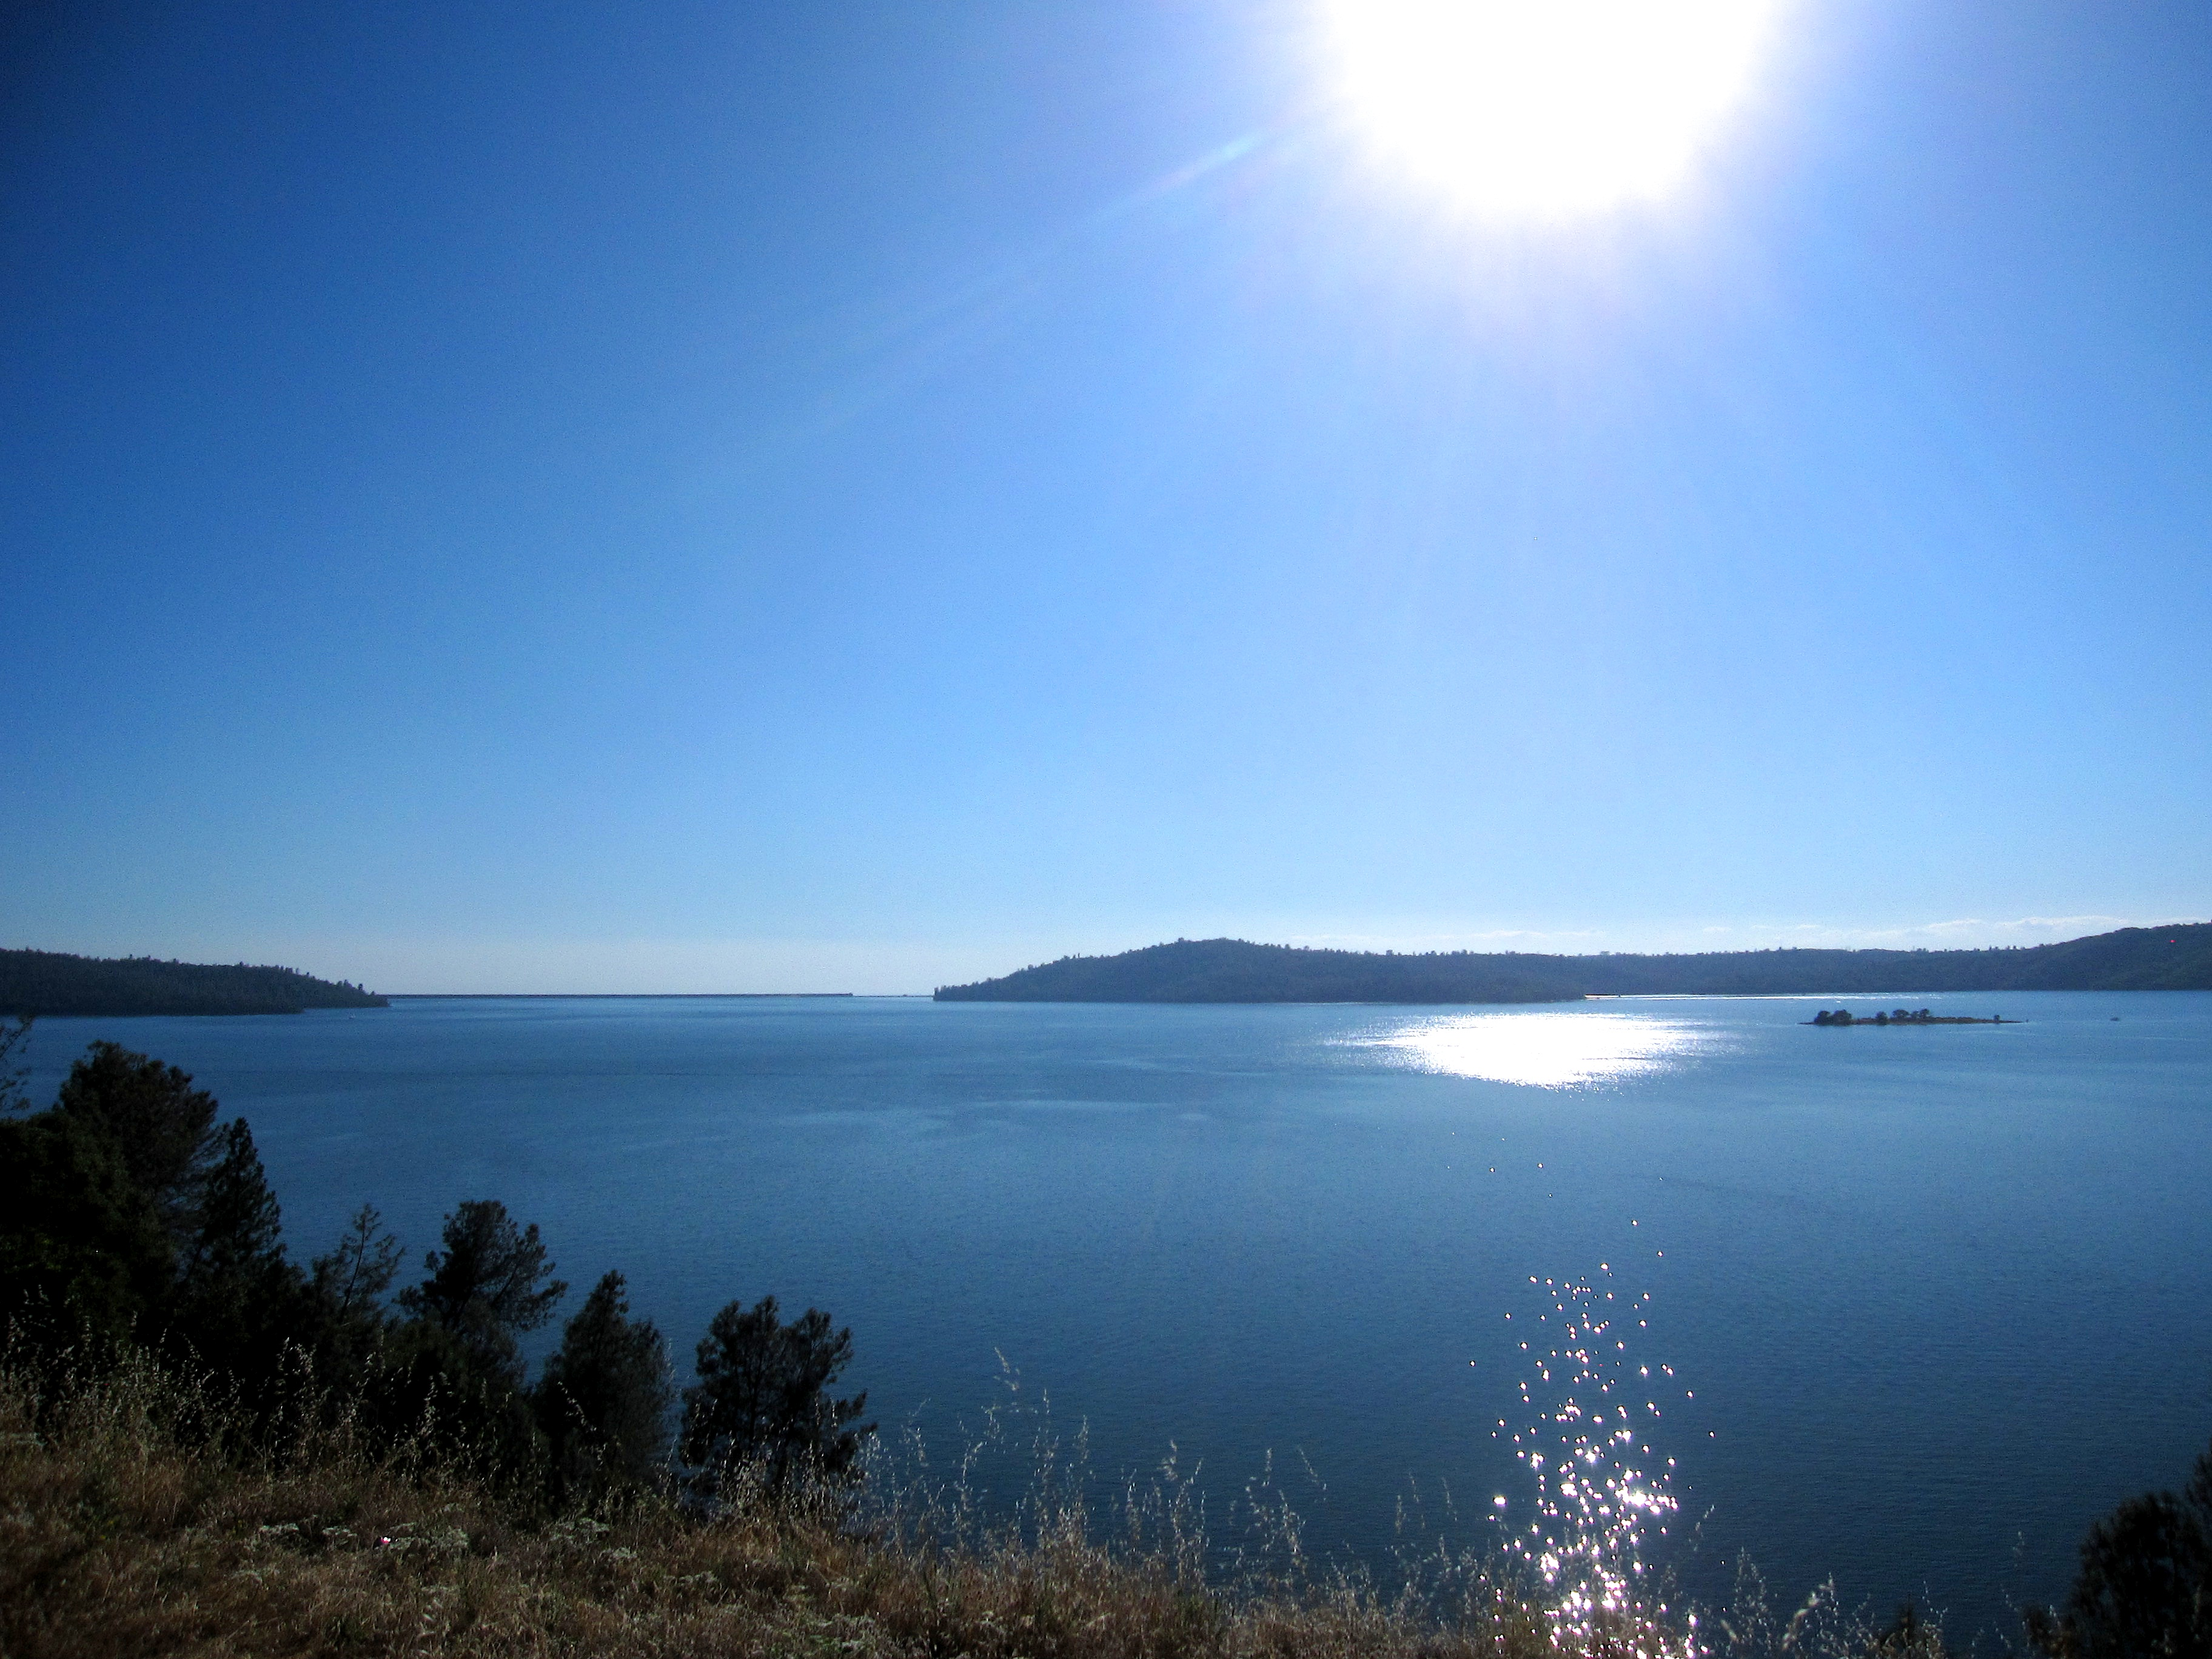 Lake Oroville in California